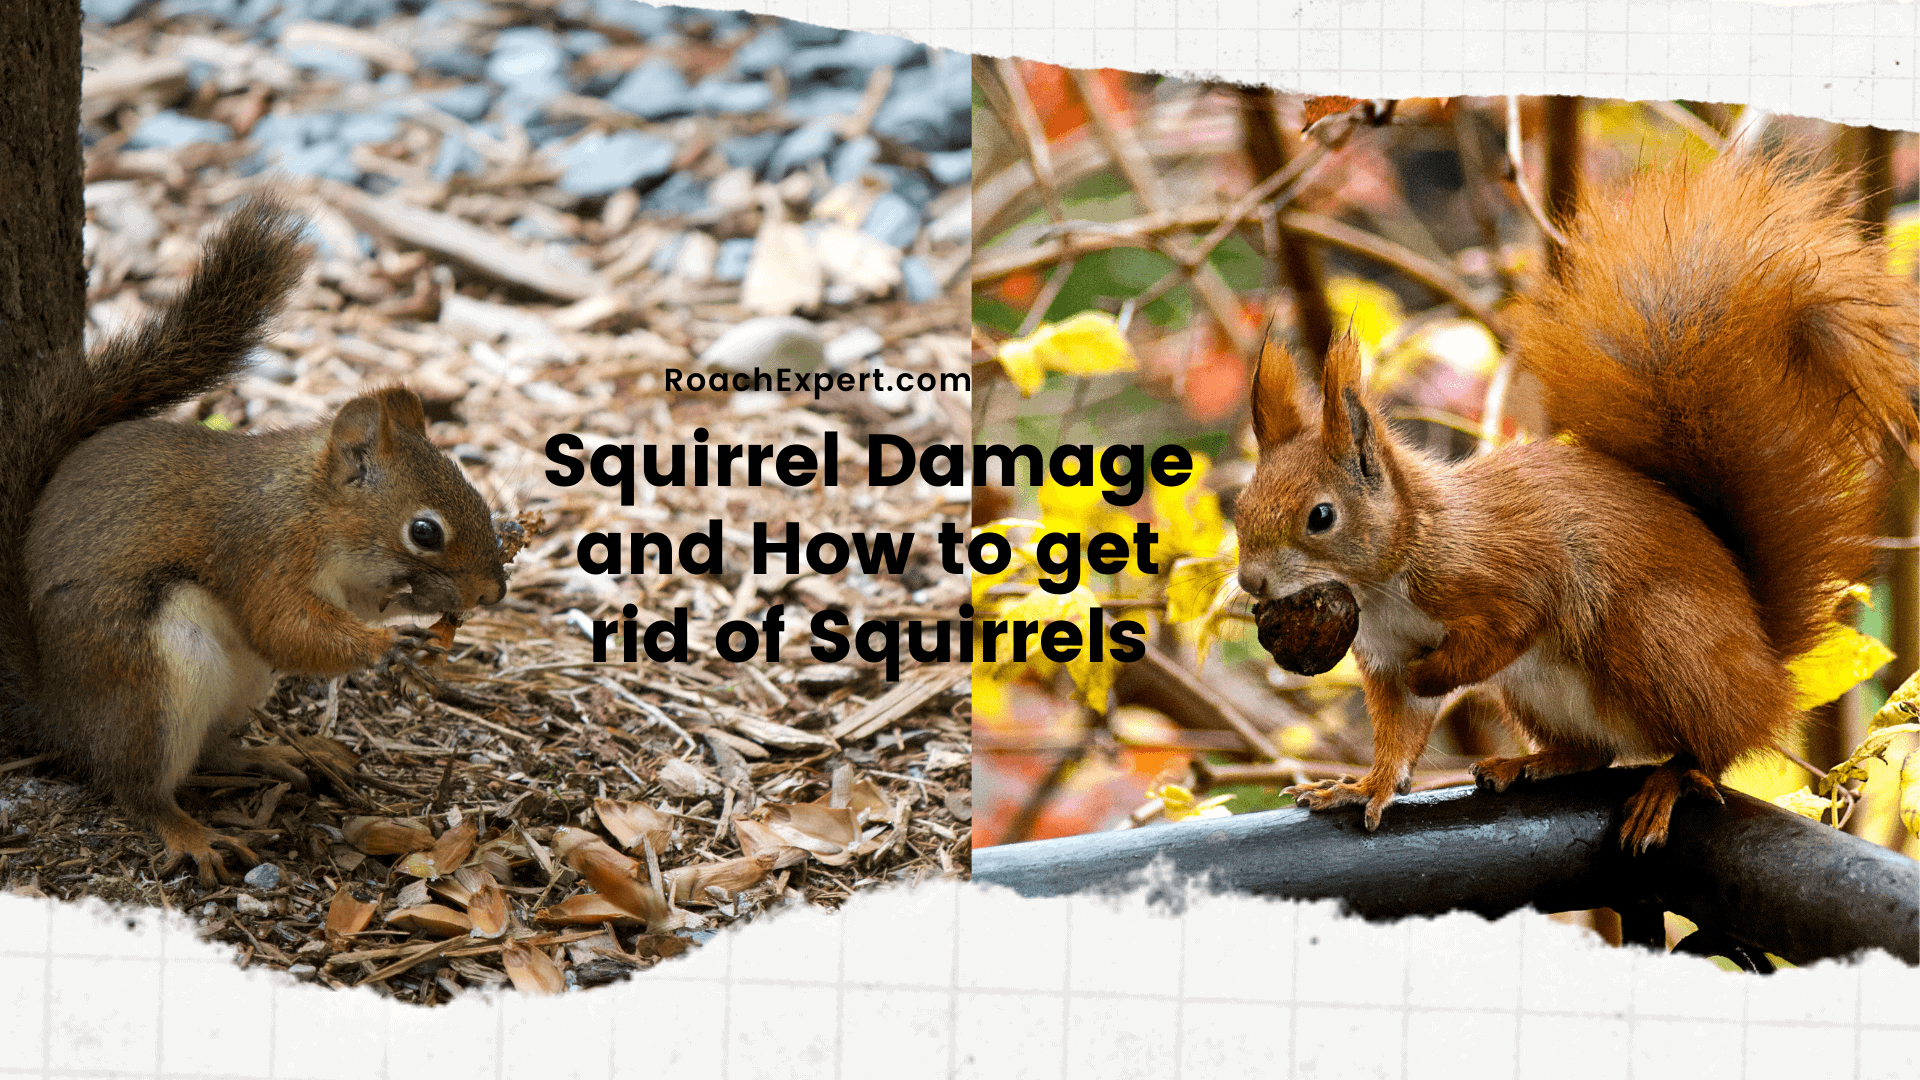 Squirrel Damage and How to get rid of Squirrels